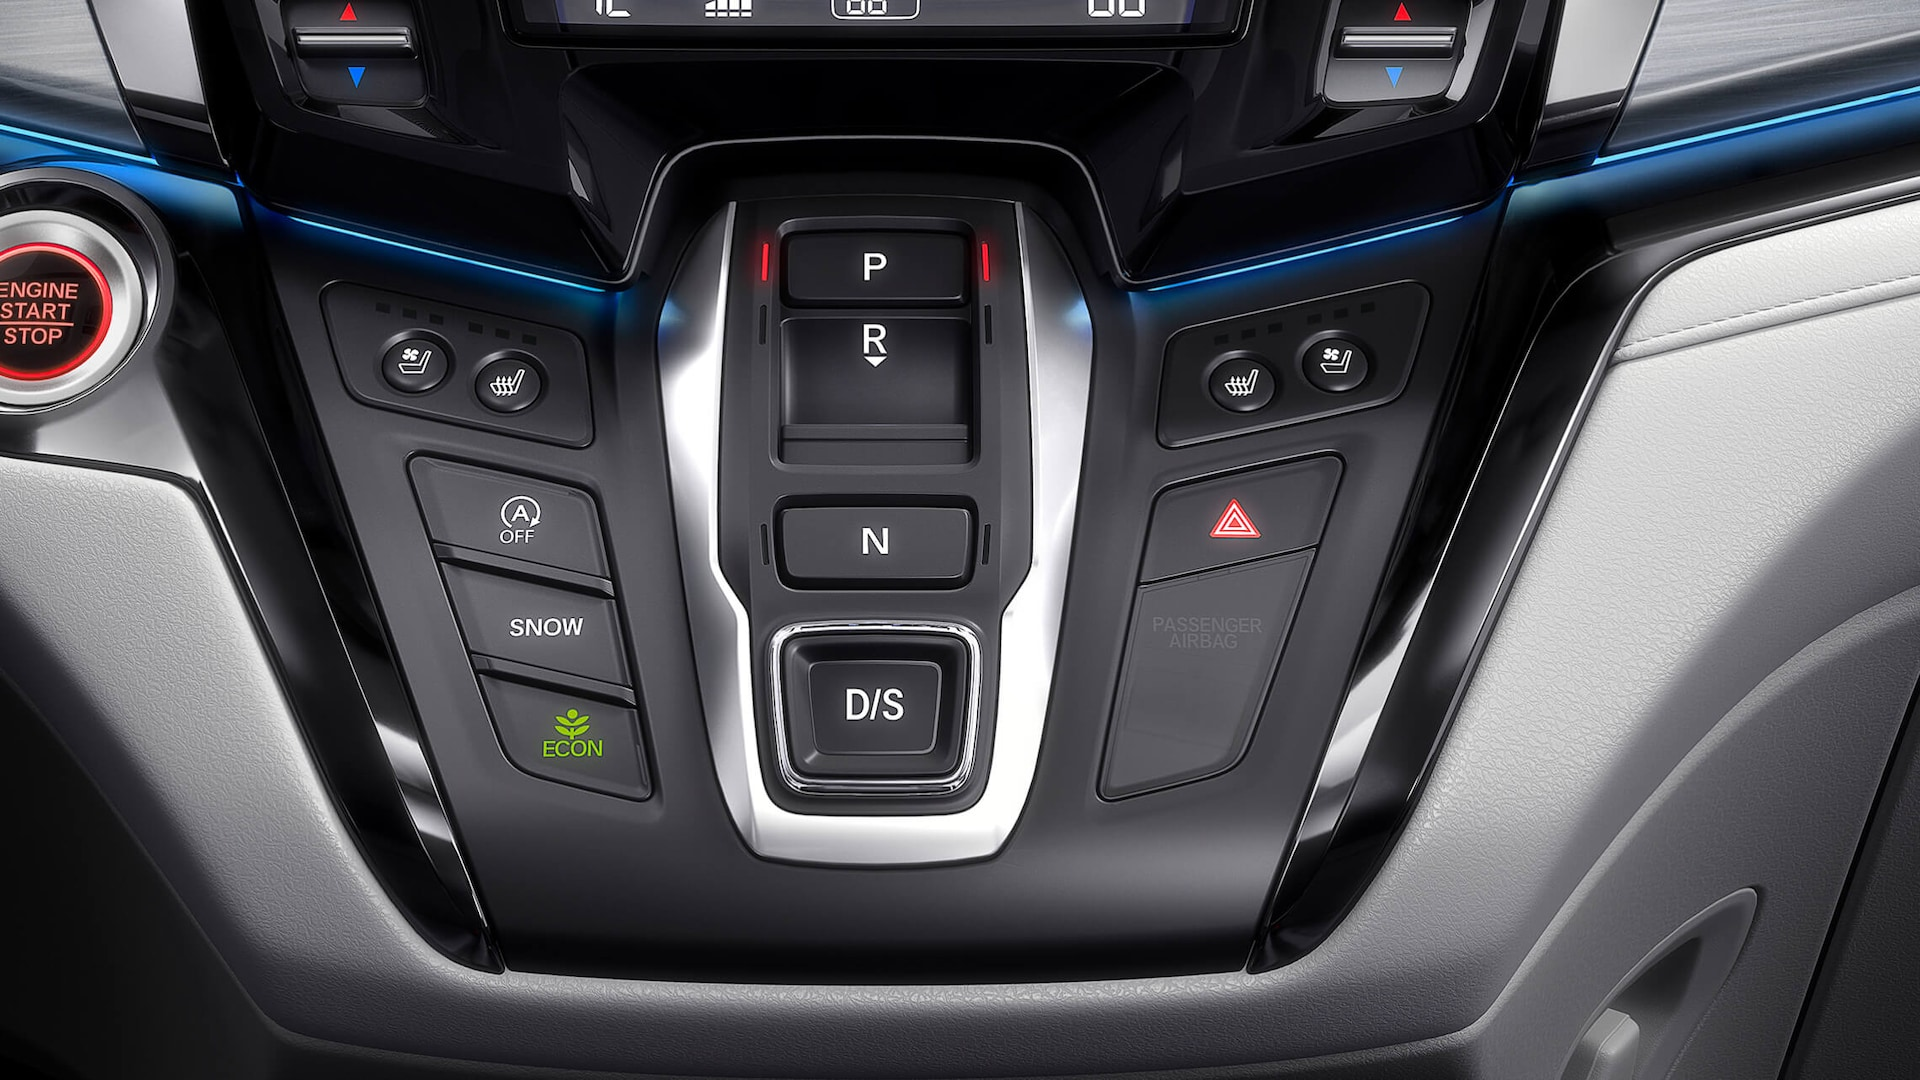 Electronic gear selector detail on the 2022 Honda Odyssey Elite.